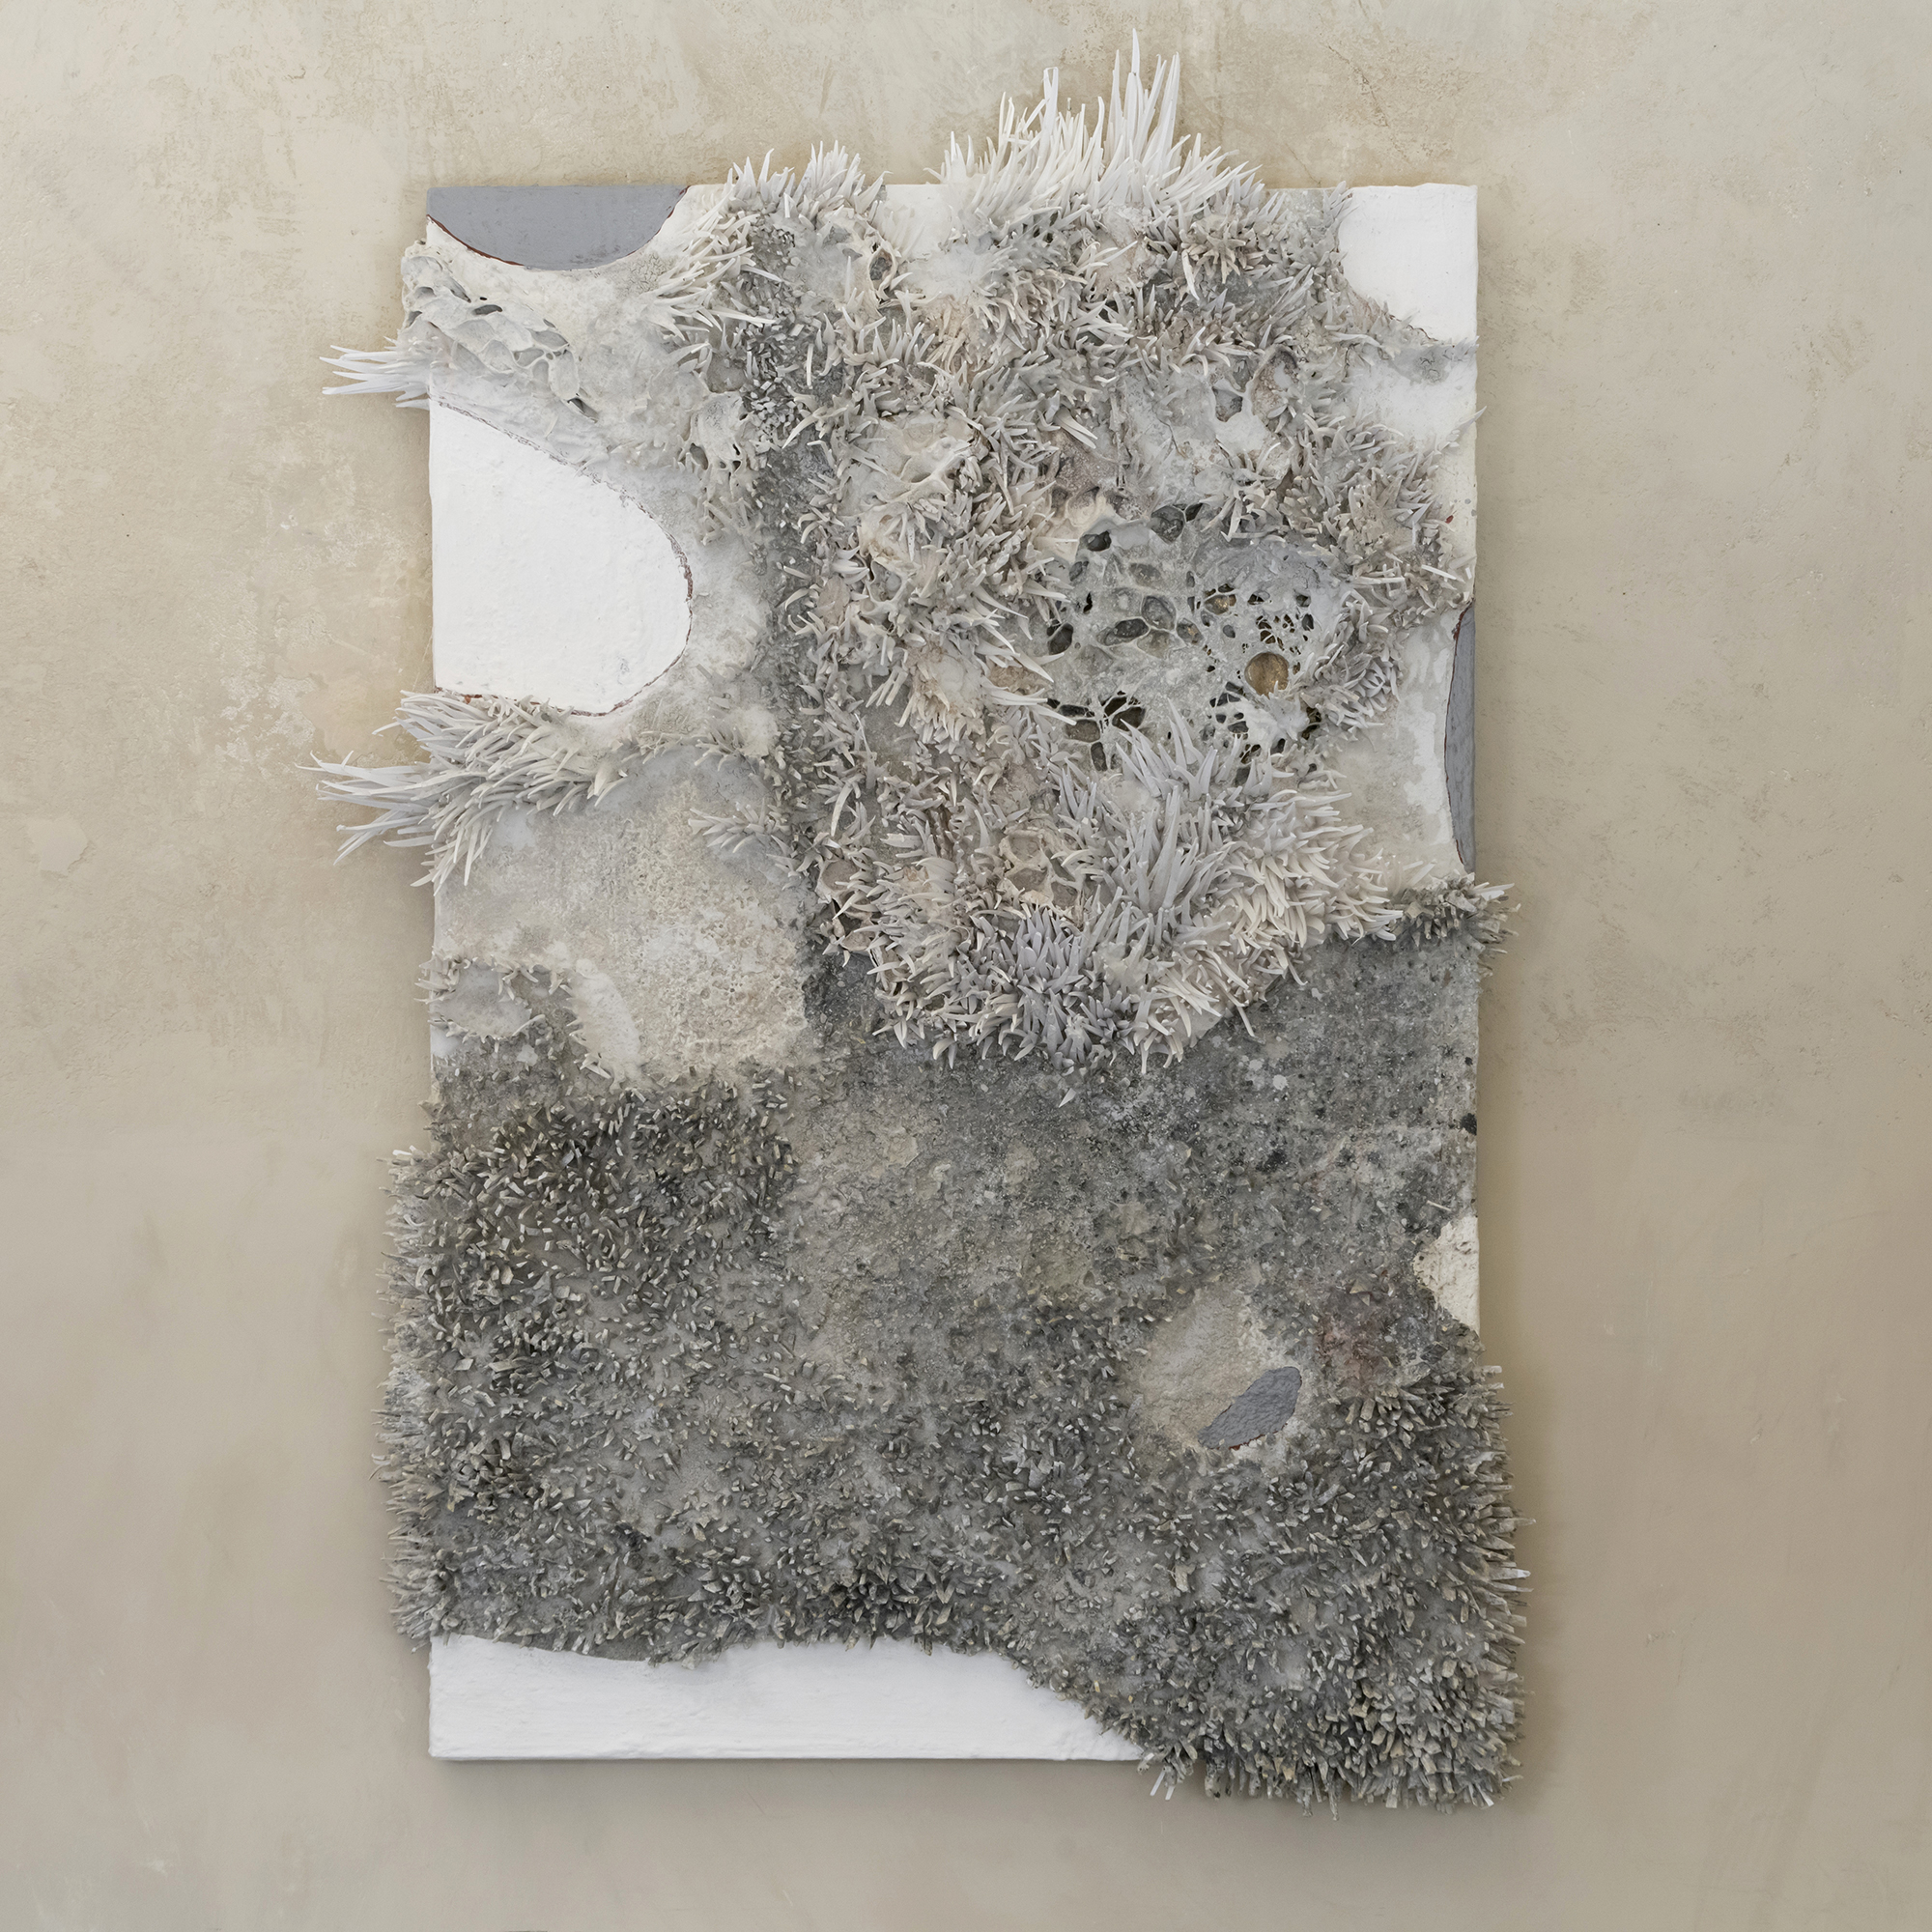 "Matteo Giampaglia ""L'odore della Neve"" Mixed-Media Abstract Art"